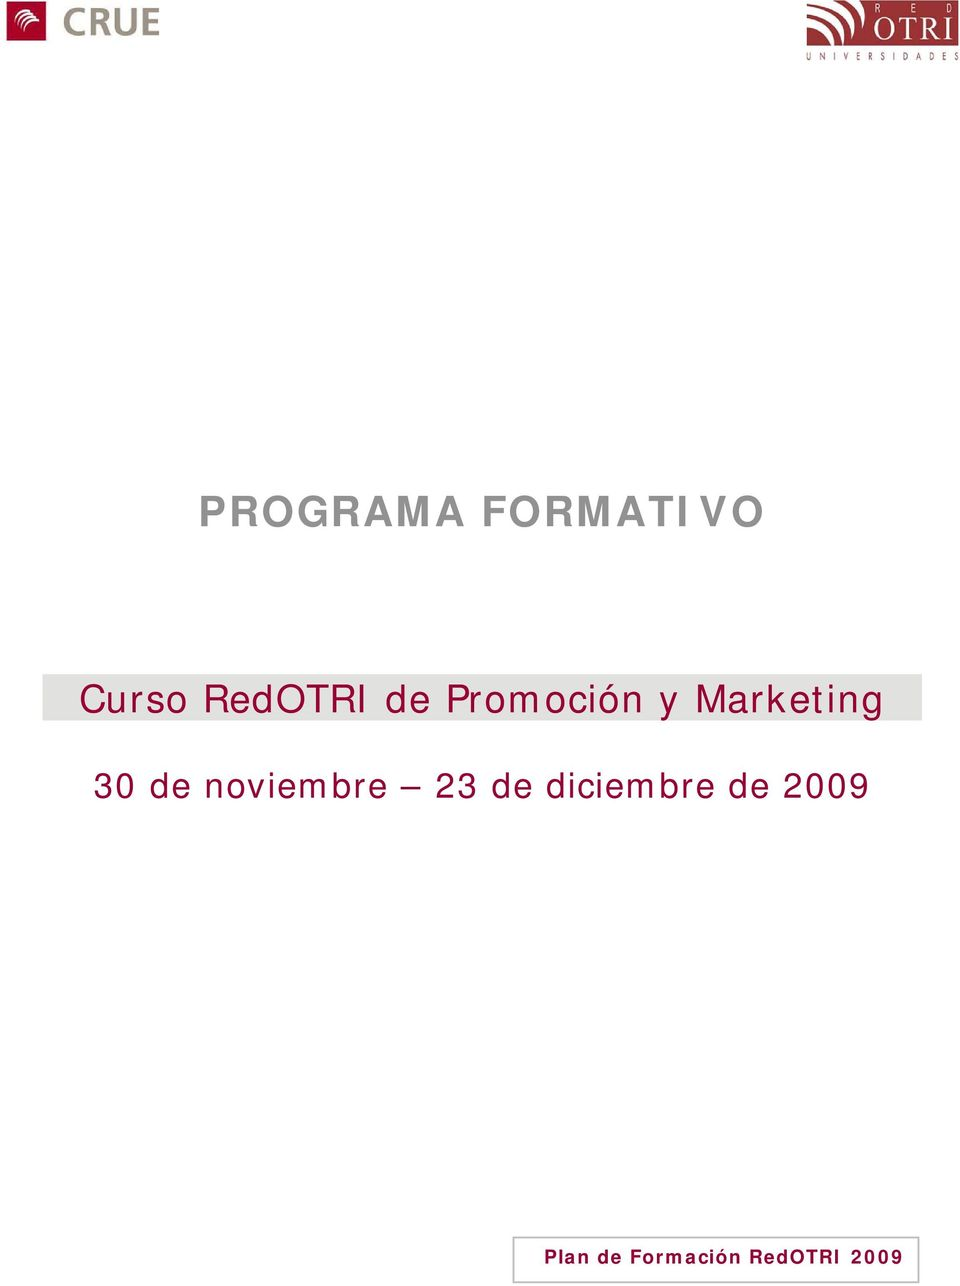 Marketing 30 de noviembre 23 de